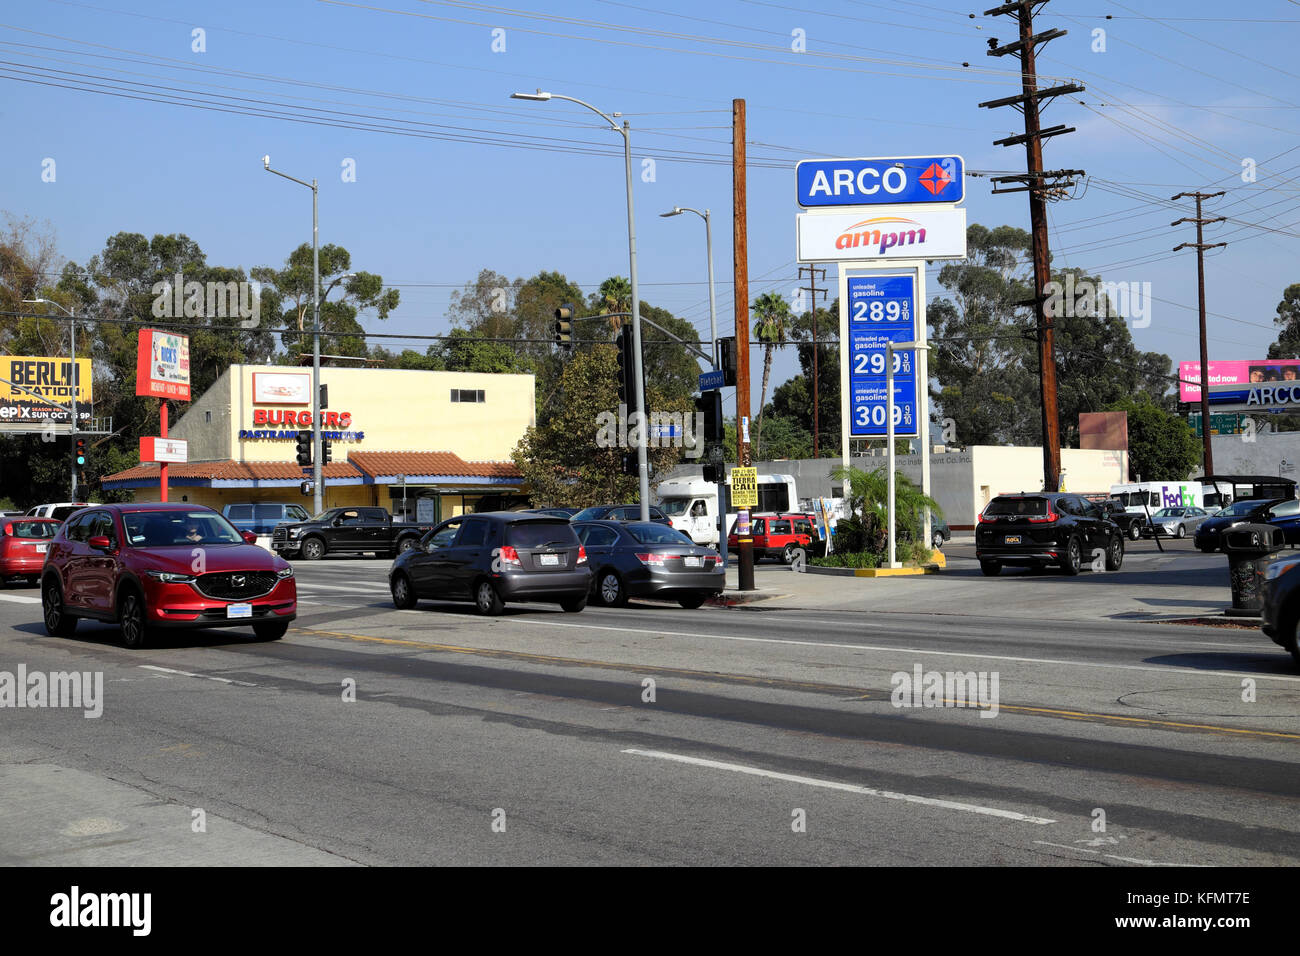 Arco Gas Station Near Me >> Cityscape Near Riverside Drive Fletcher Drive Arco Gas Station